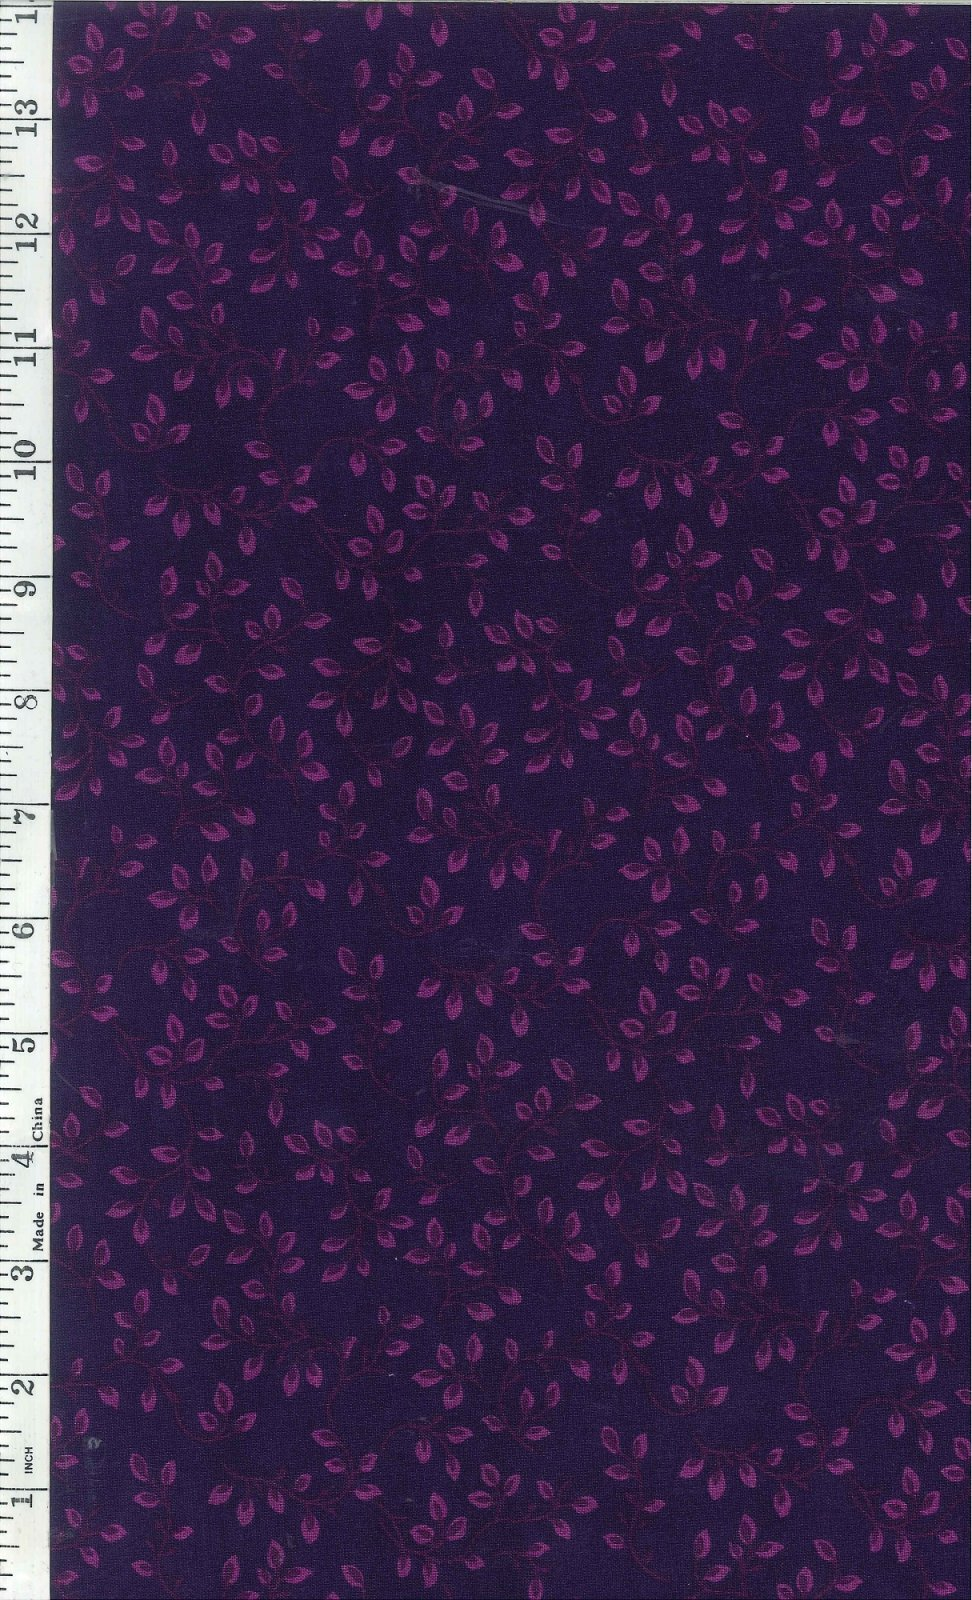 Back Friday Fabric - Folio Purple Wide Backing by Henry Glass - copy